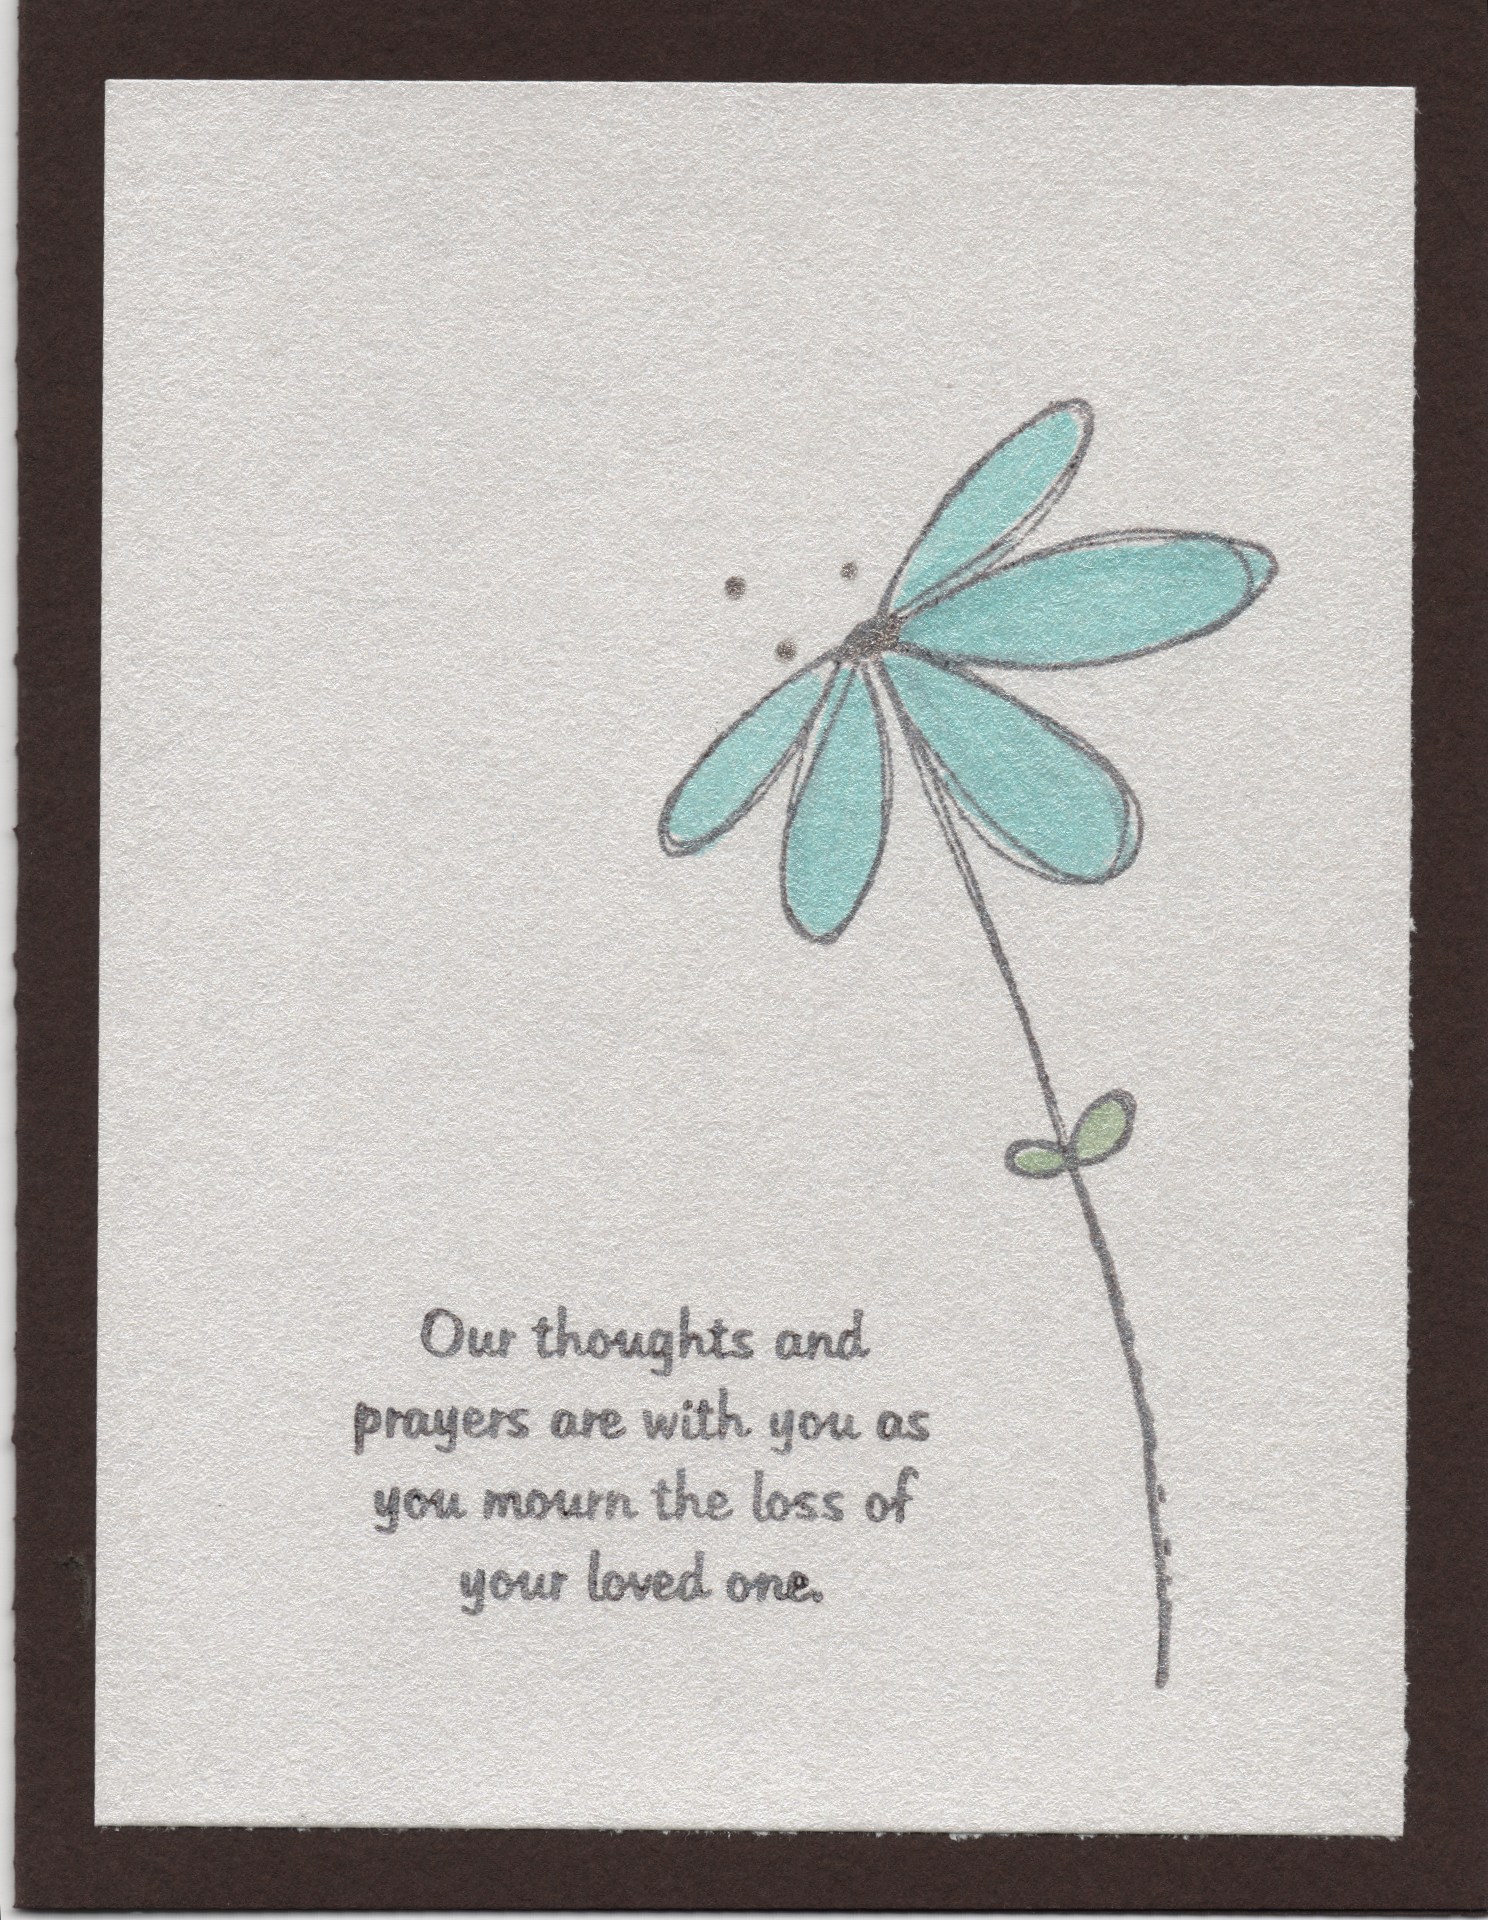 Quotes For A Loss Of A Loved One Loved One Endless Creations Rubber Stamps